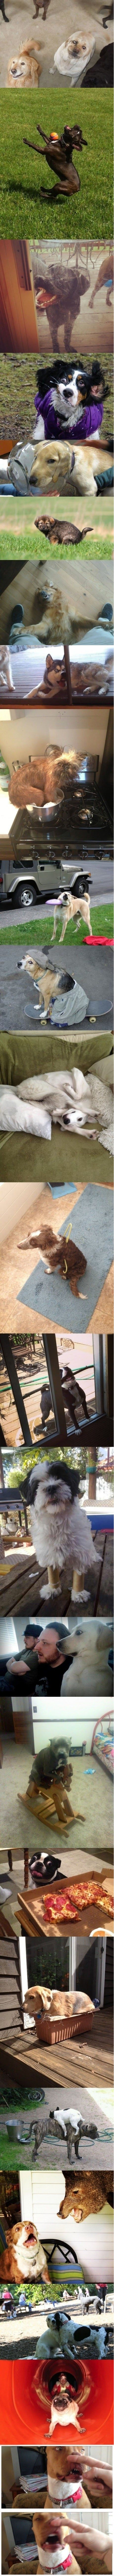 funny-picture-unphotogenic-dogs-compilation